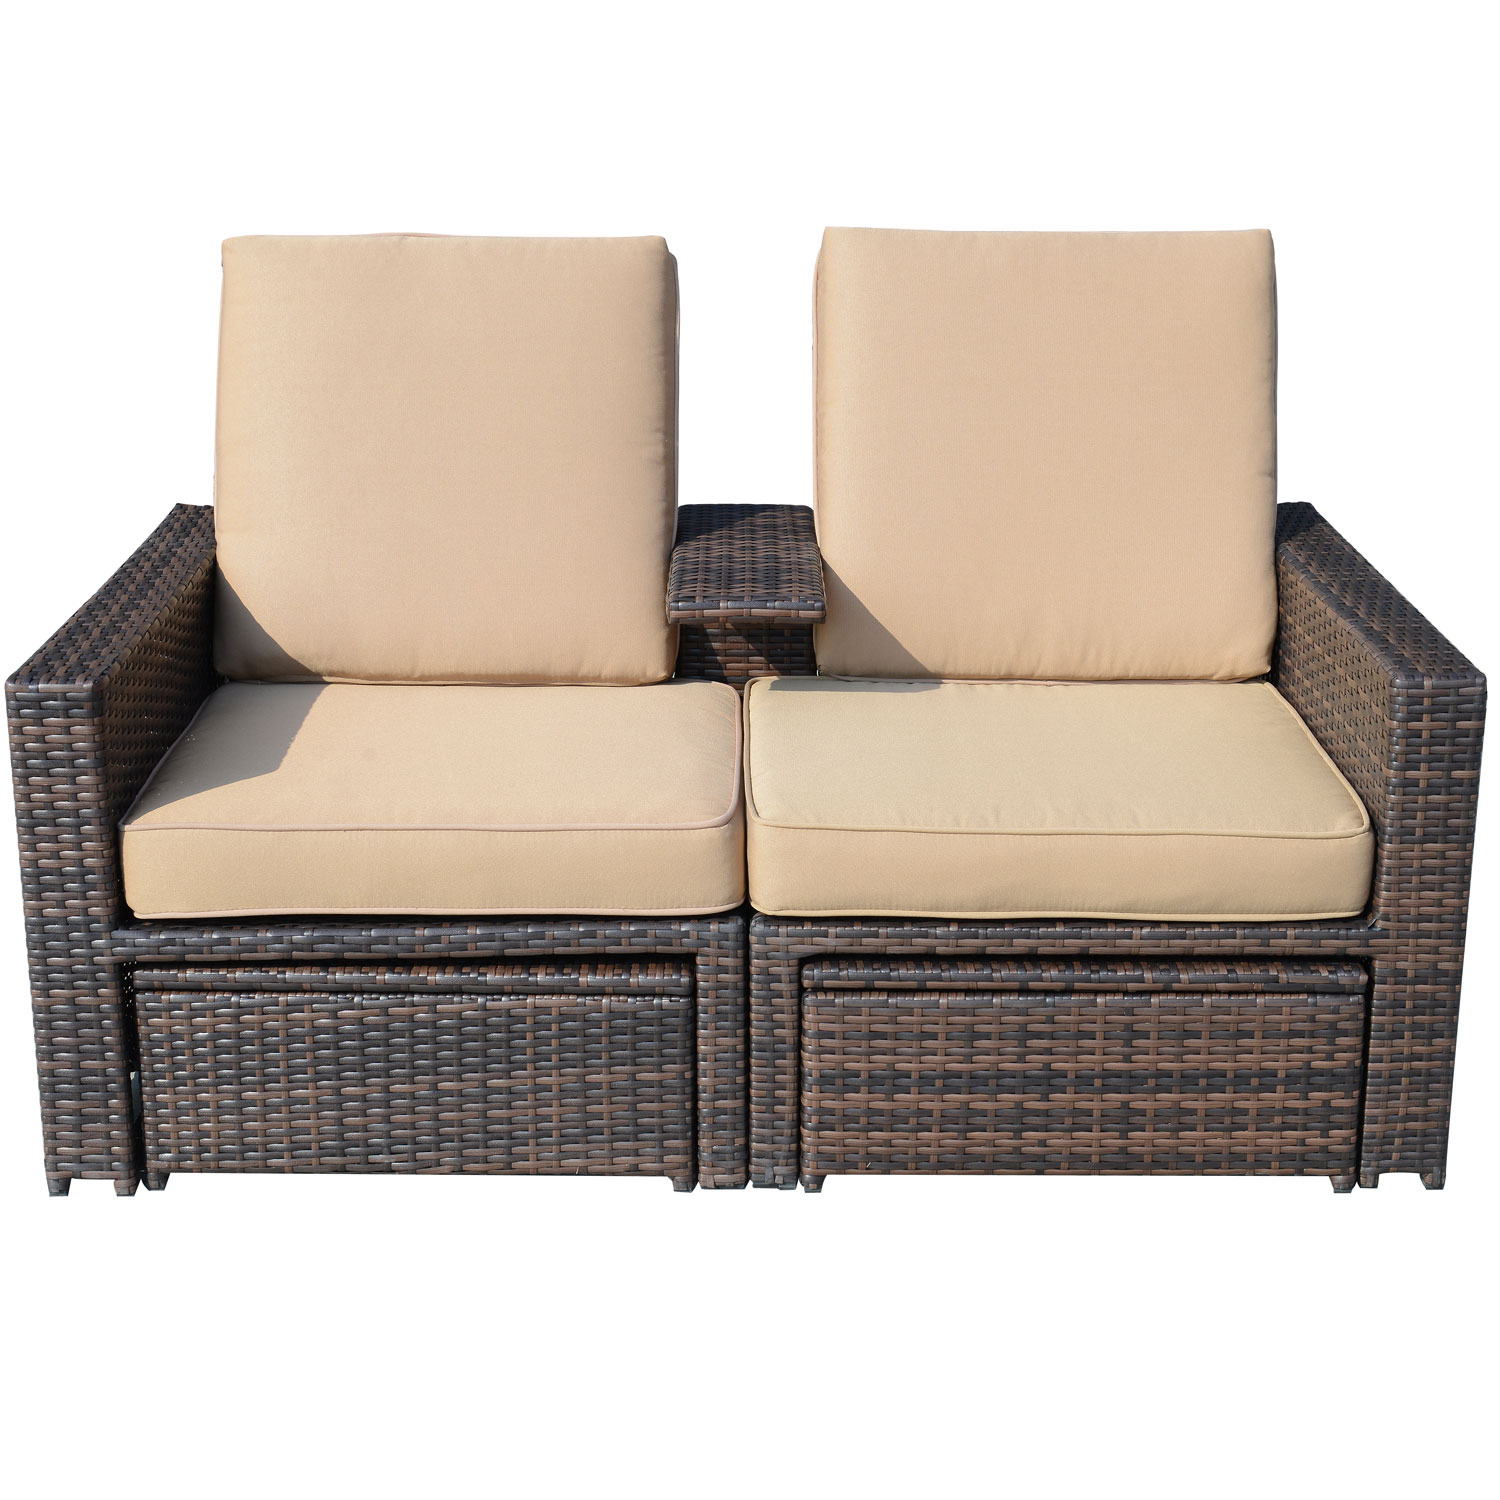 Aosom LLC Outsunny Outdoor 3 piece PE Rattan Wicker Lounge Chair